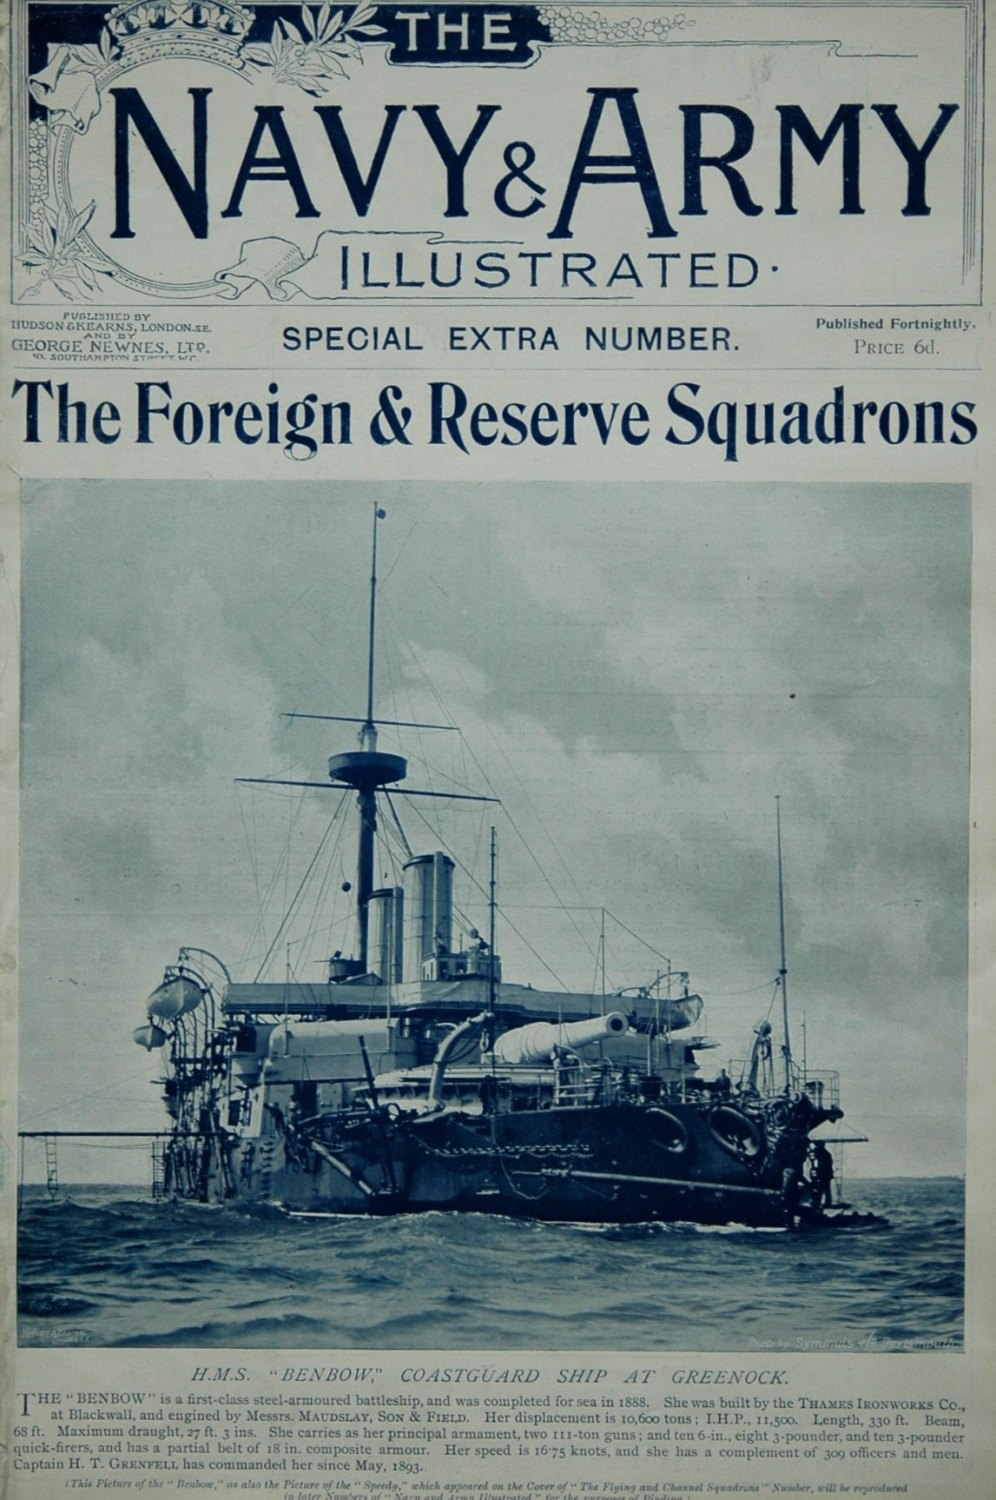 Navy & Army Illustrated. - The Foreign and Reserve Squadrons.